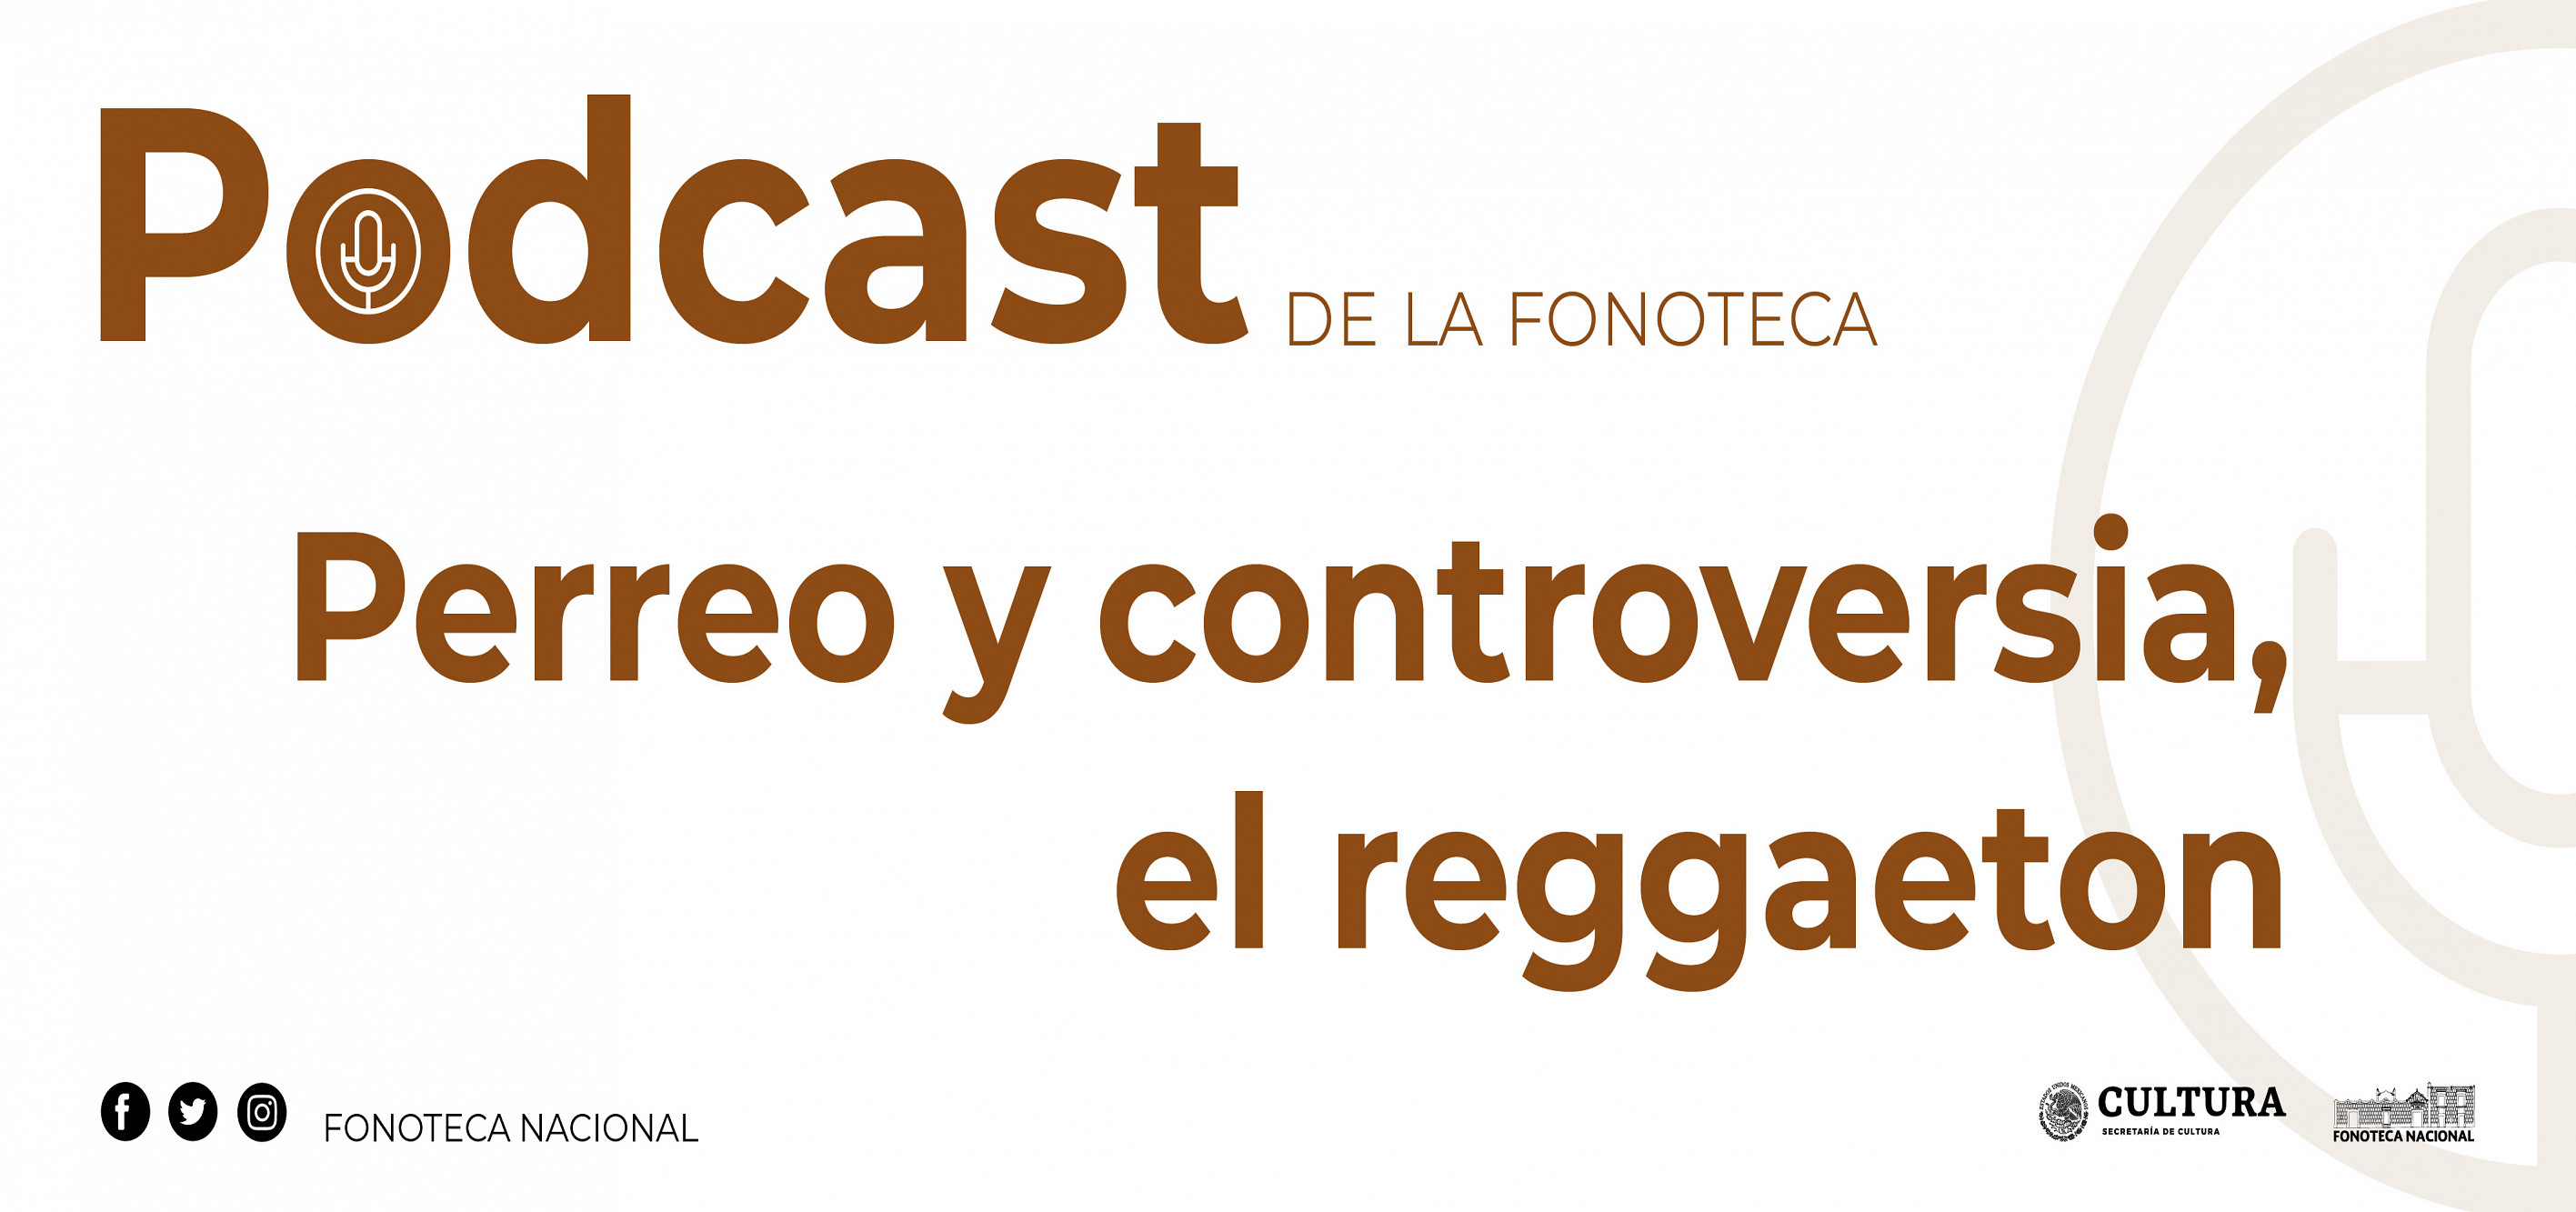 Podcast semanal